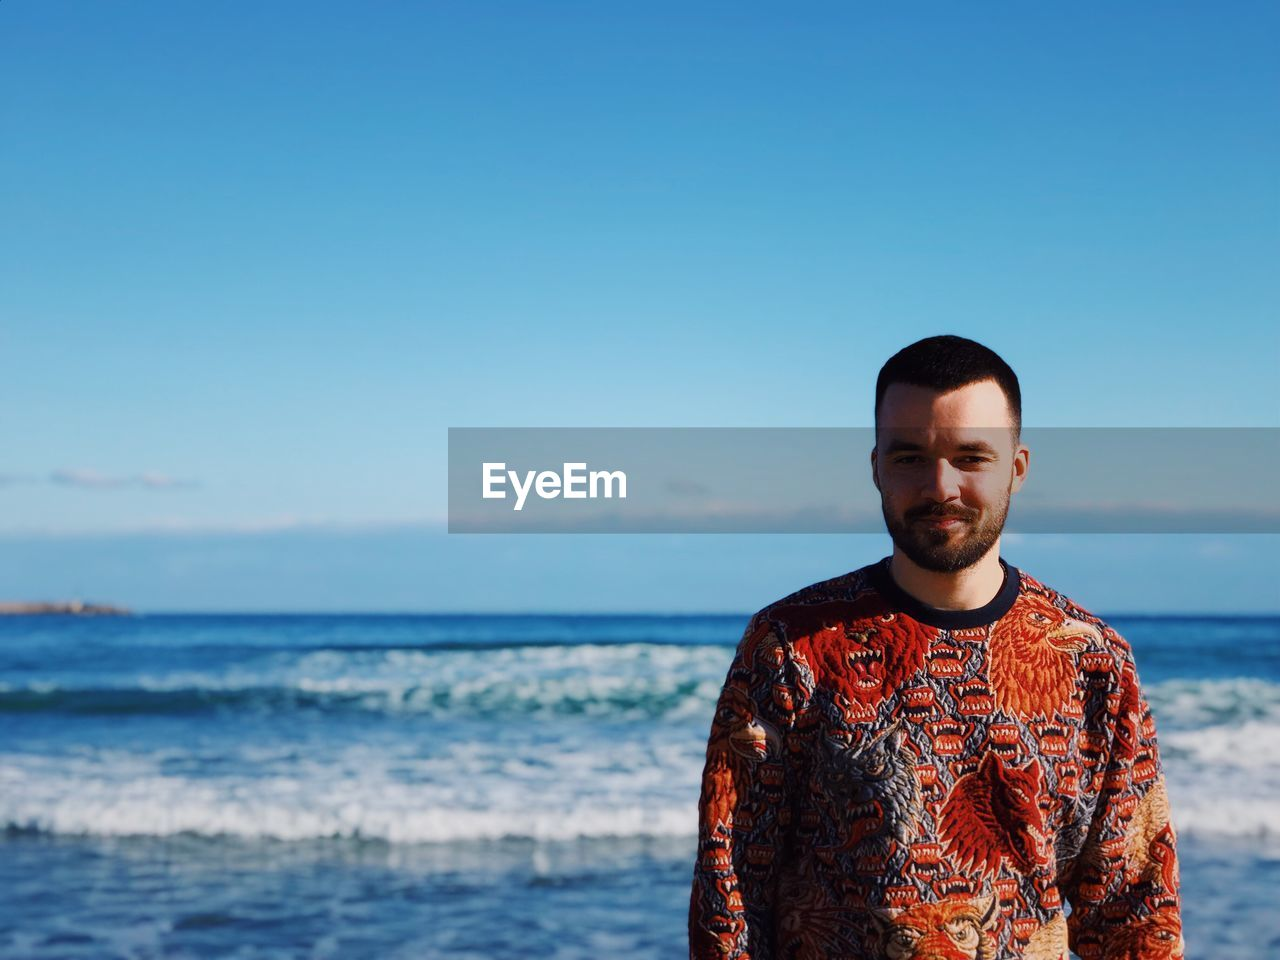 sky, sea, front view, lifestyles, one person, real people, leisure activity, water, clear sky, copy space, horizon over water, young men, casual clothing, standing, horizon, nature, portrait, scenics - nature, outdoors